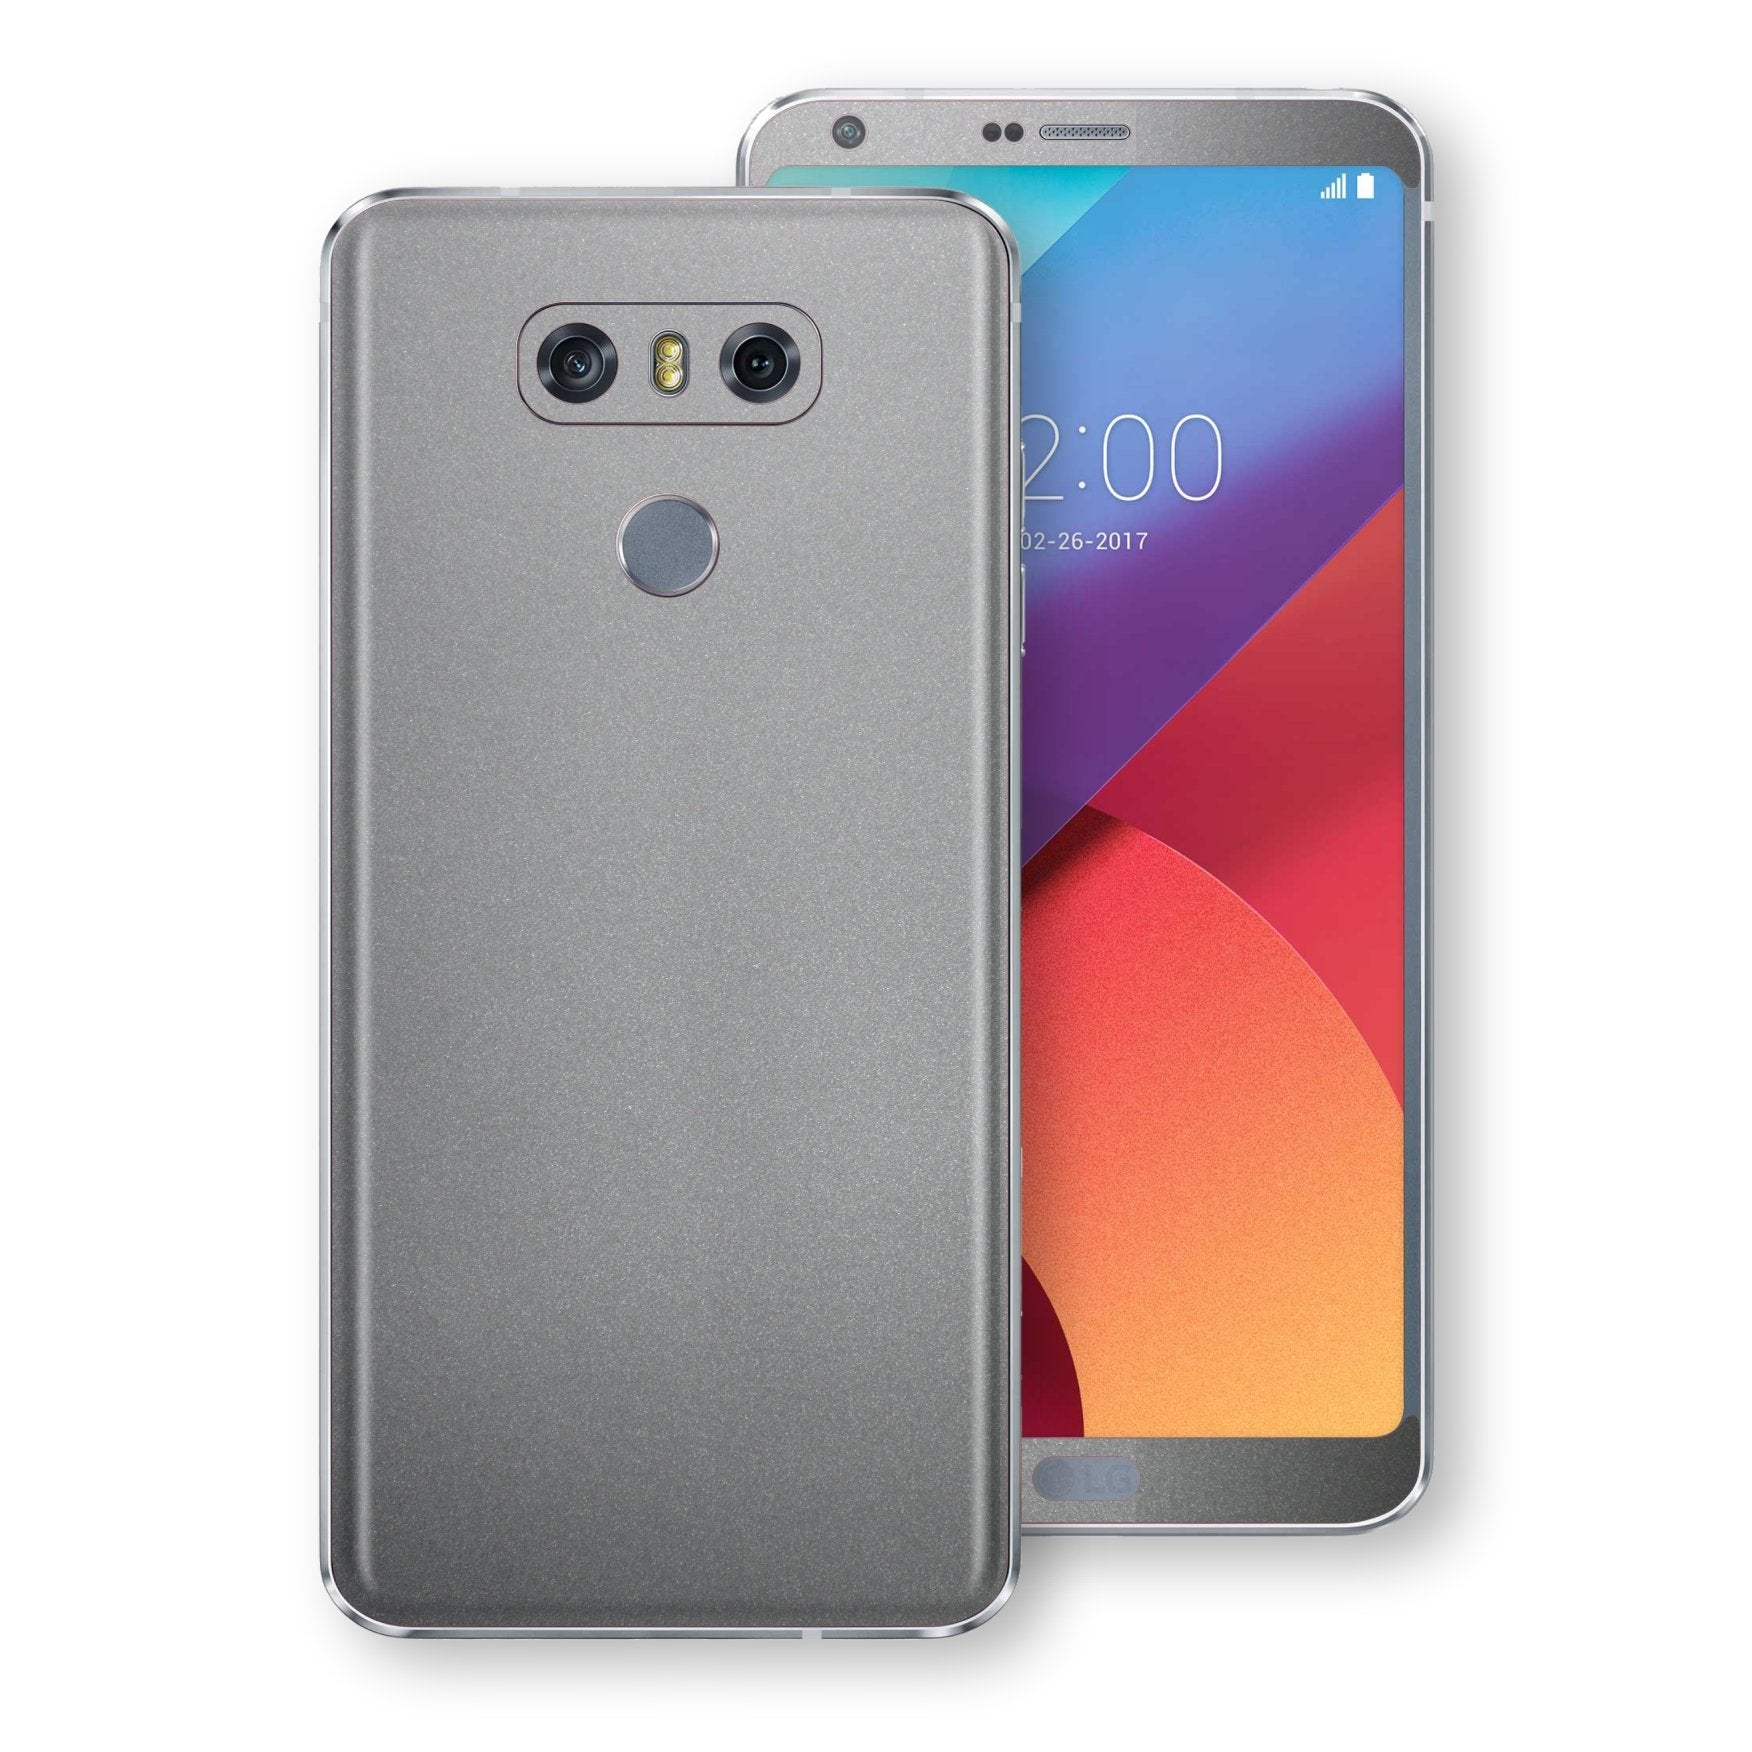 LG G6 Space Grey Matt Metallic Skin, Decal, Wrap, Protector, Cover by EasySkinz | EasySkinz.com